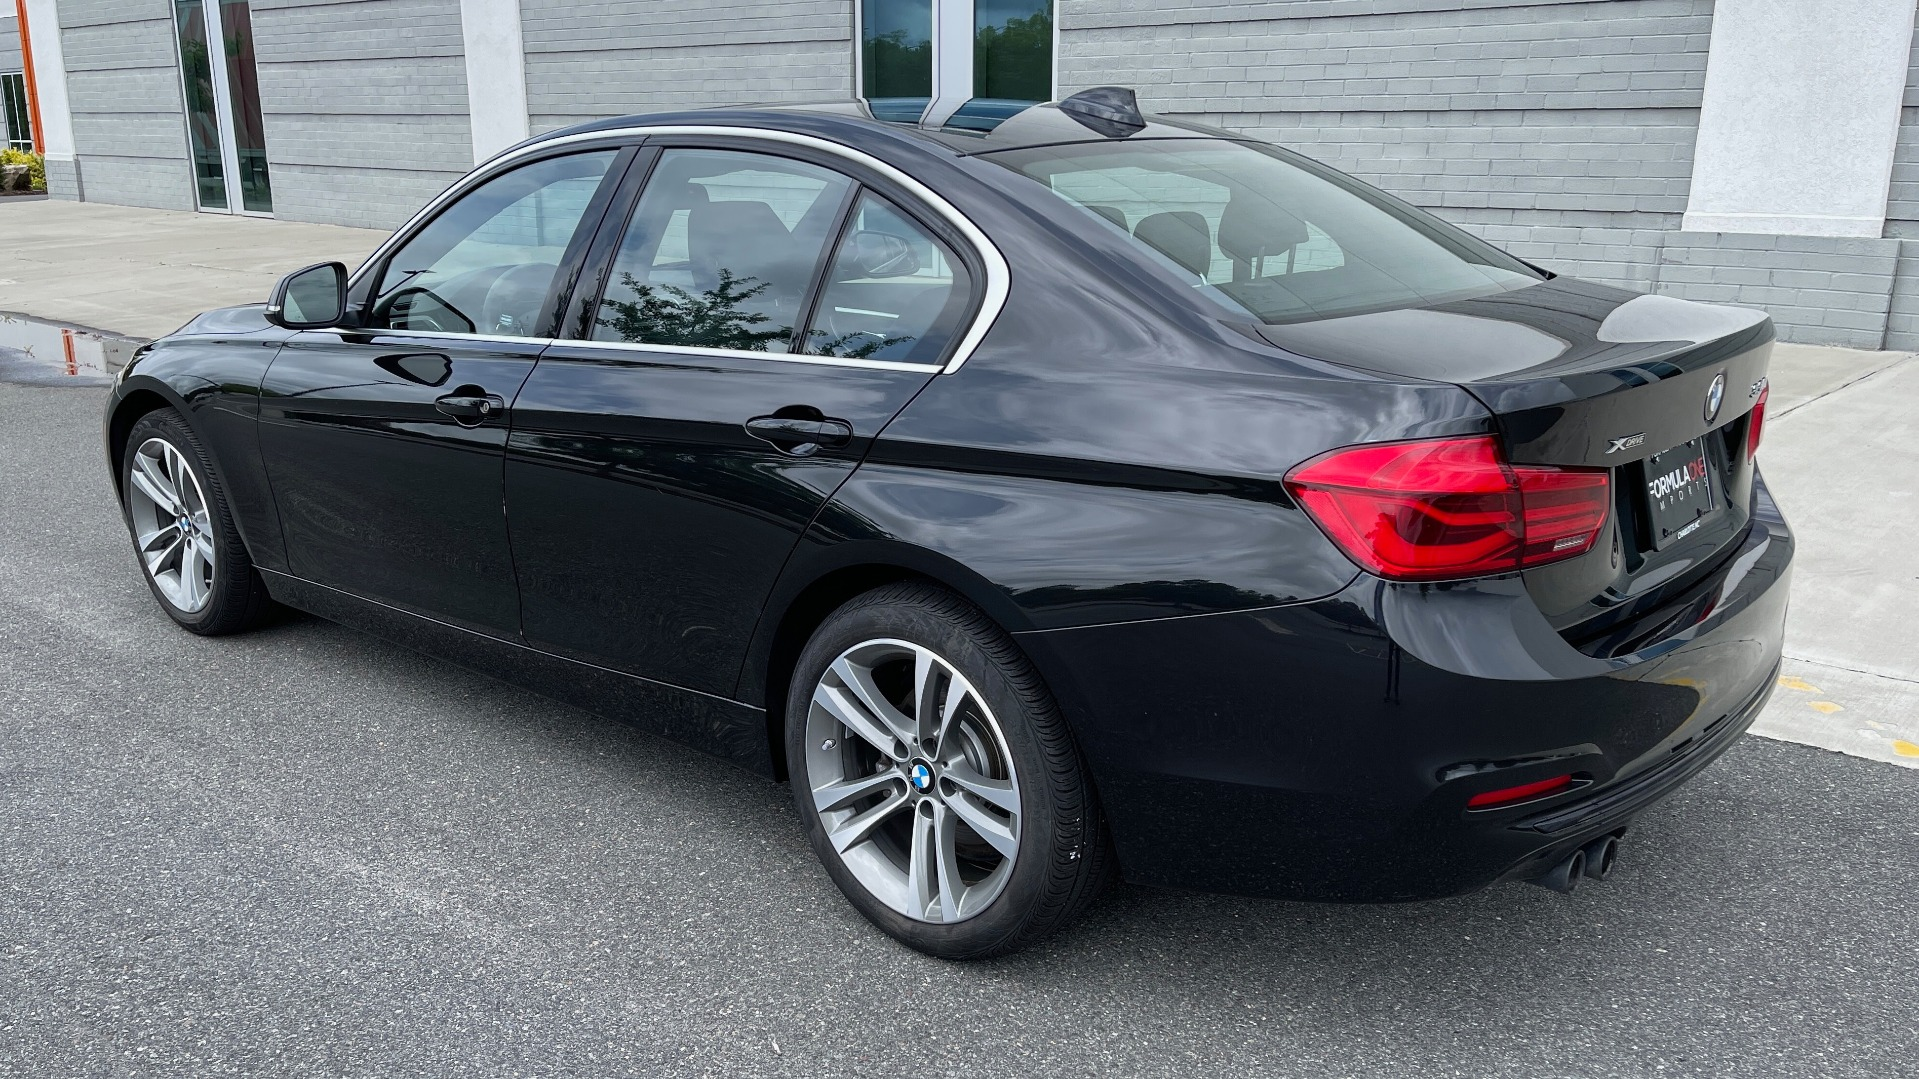 Used 2018 BMW 3 SERIES 330IXDRIVE / NAV / CONV PKG / ABSD / SUNROOF / REARVIEW for sale $29,599 at Formula Imports in Charlotte NC 28227 5